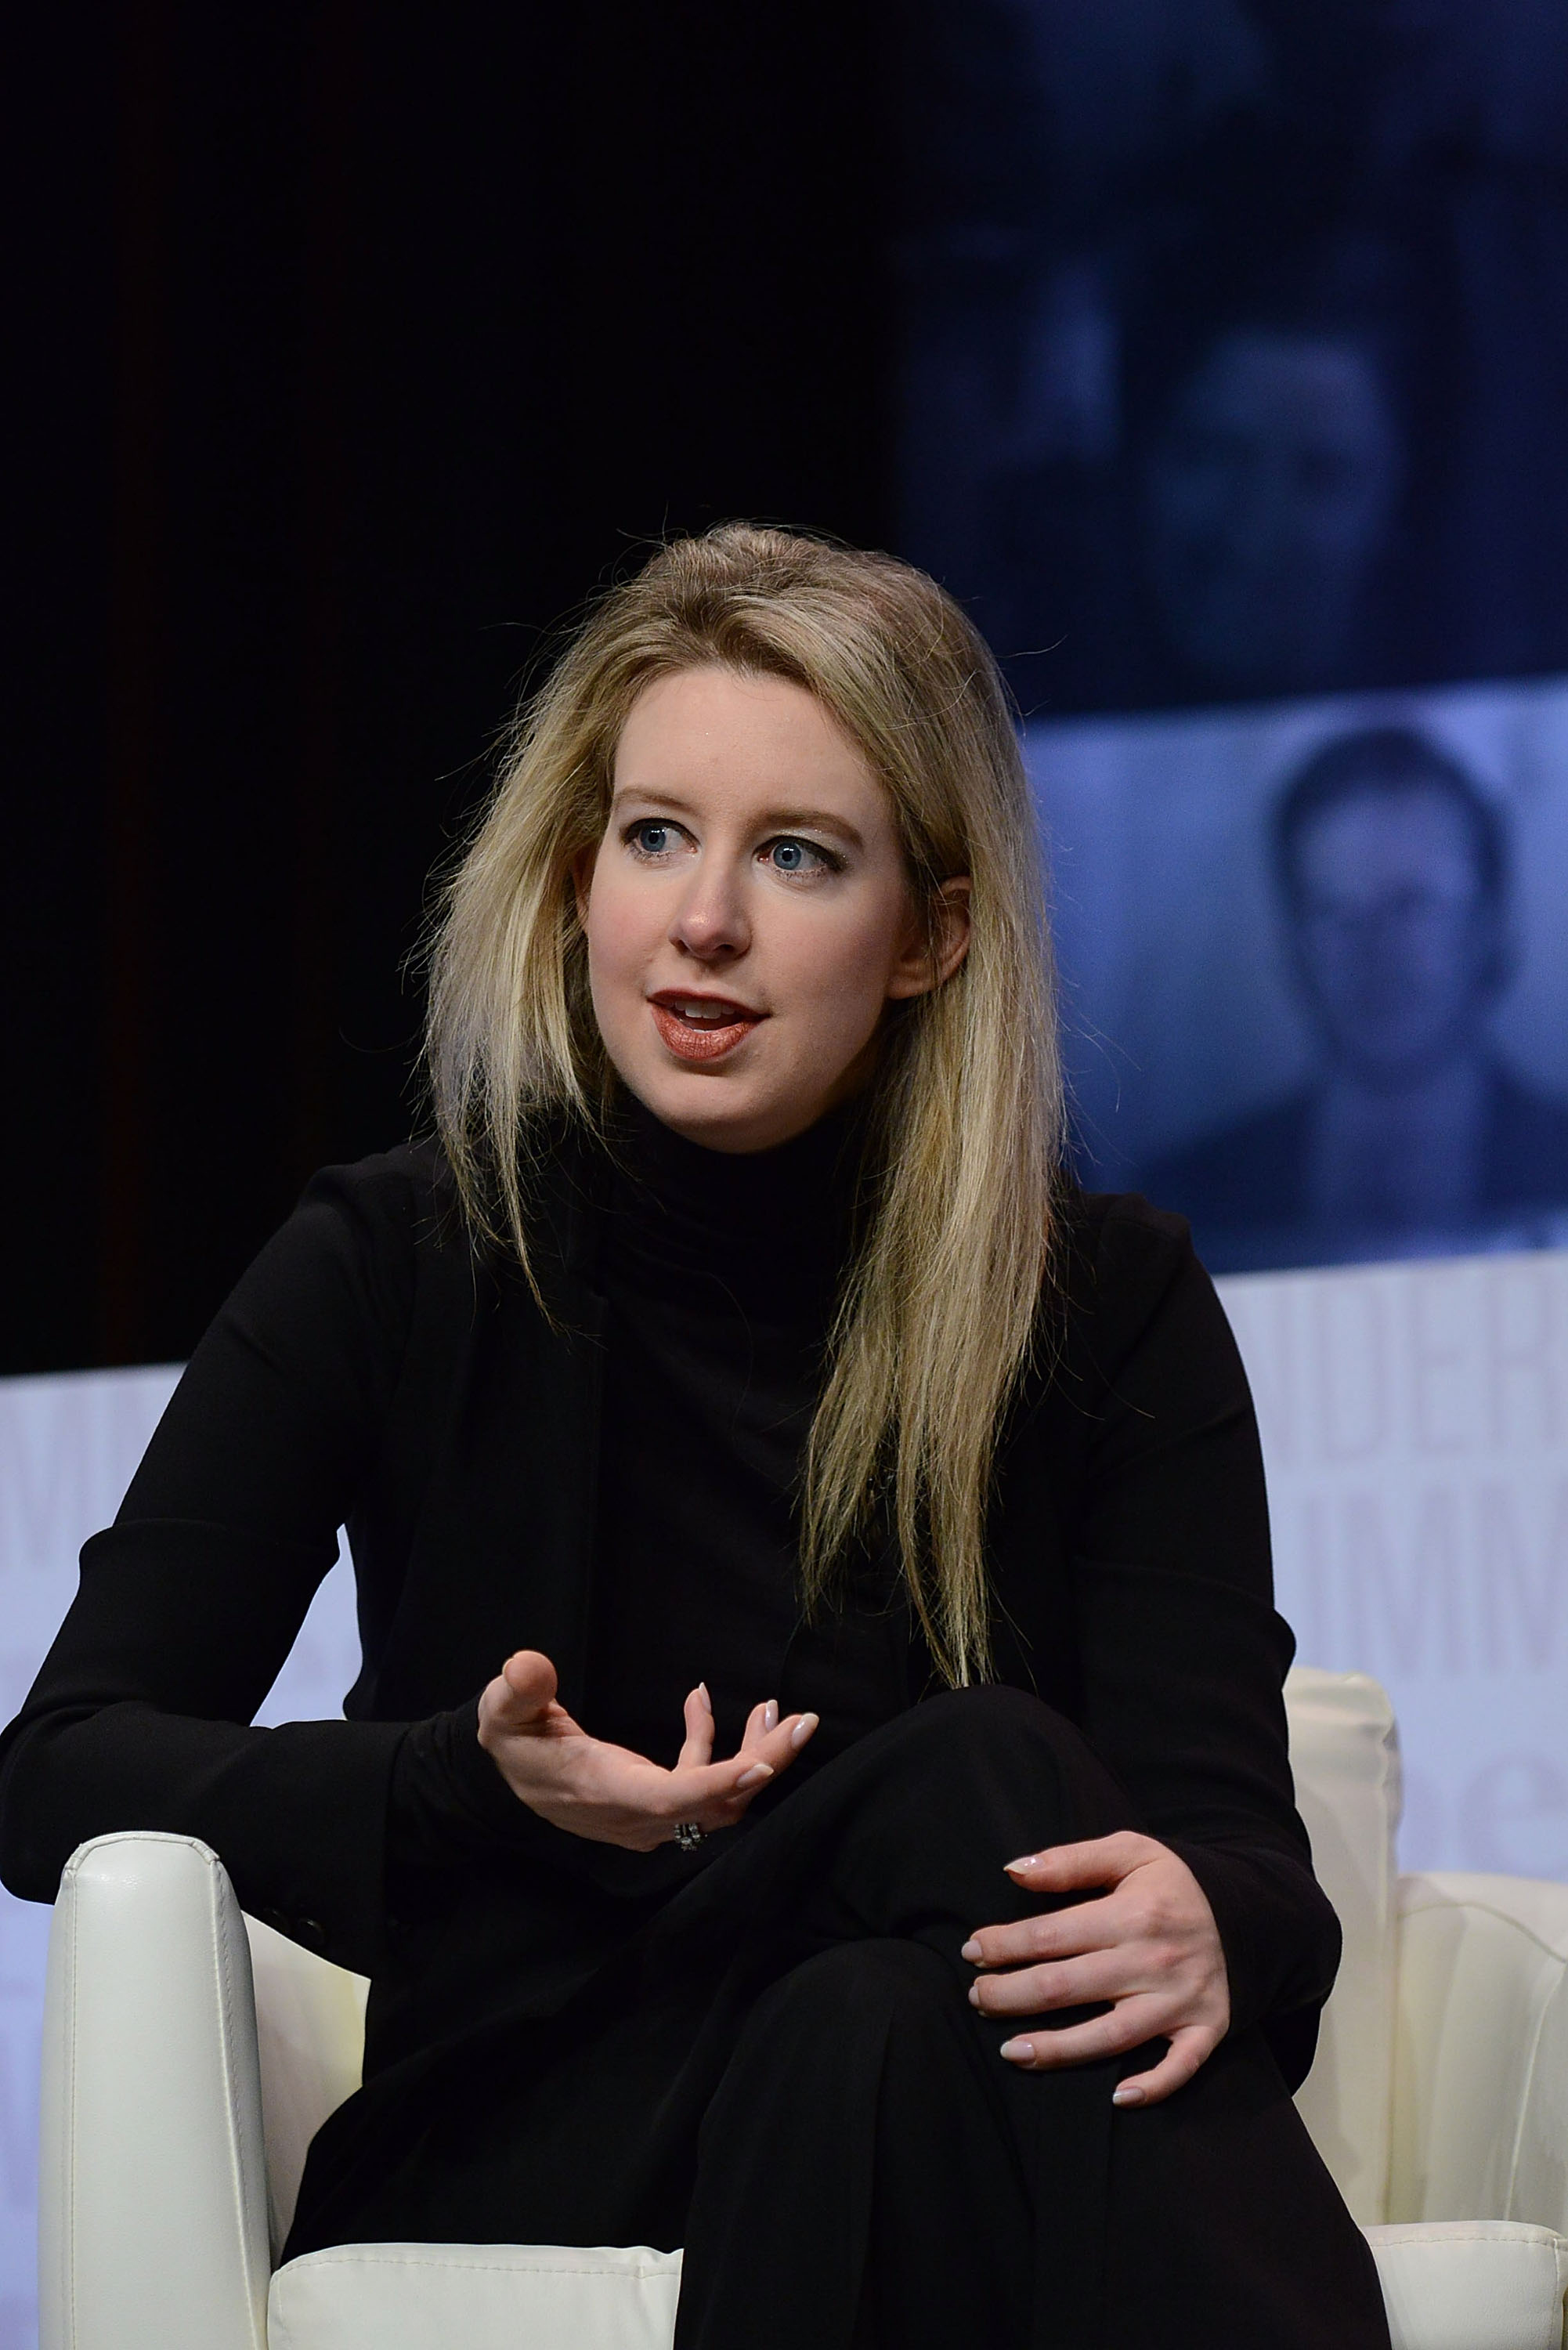 How does one invest in the company Theranos?